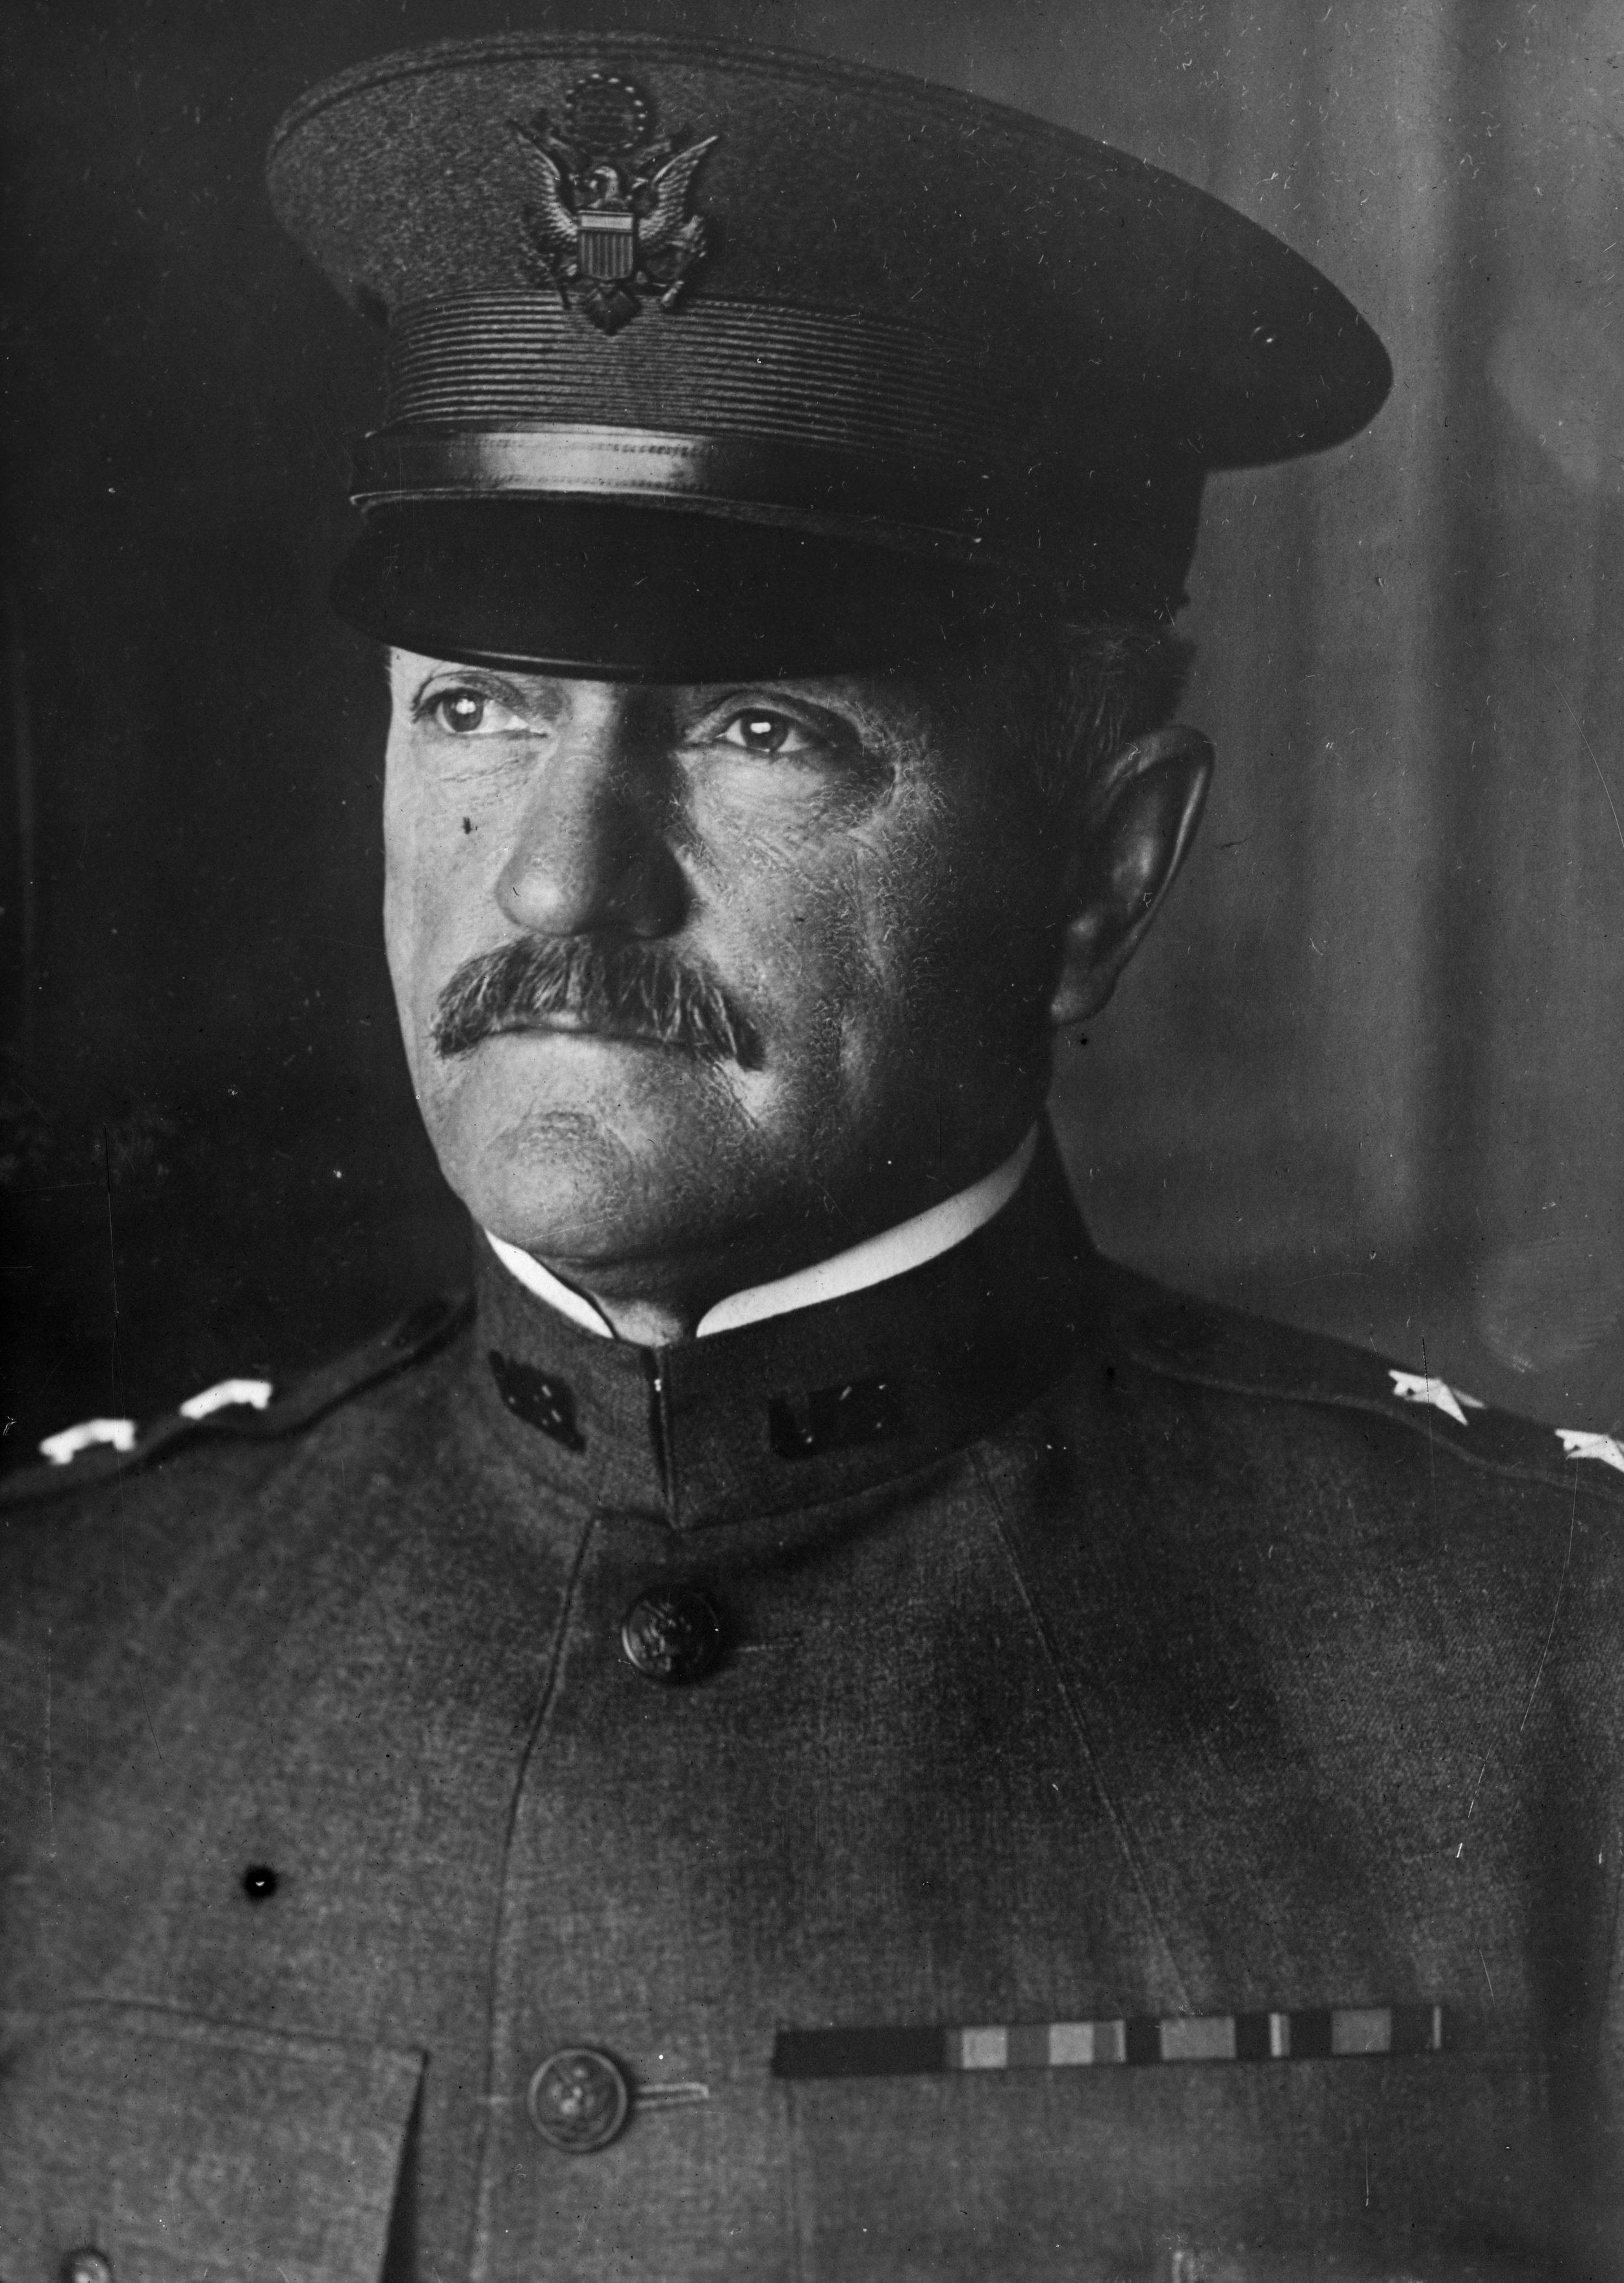 General of the Armies John J. Pershing, Commander AEF